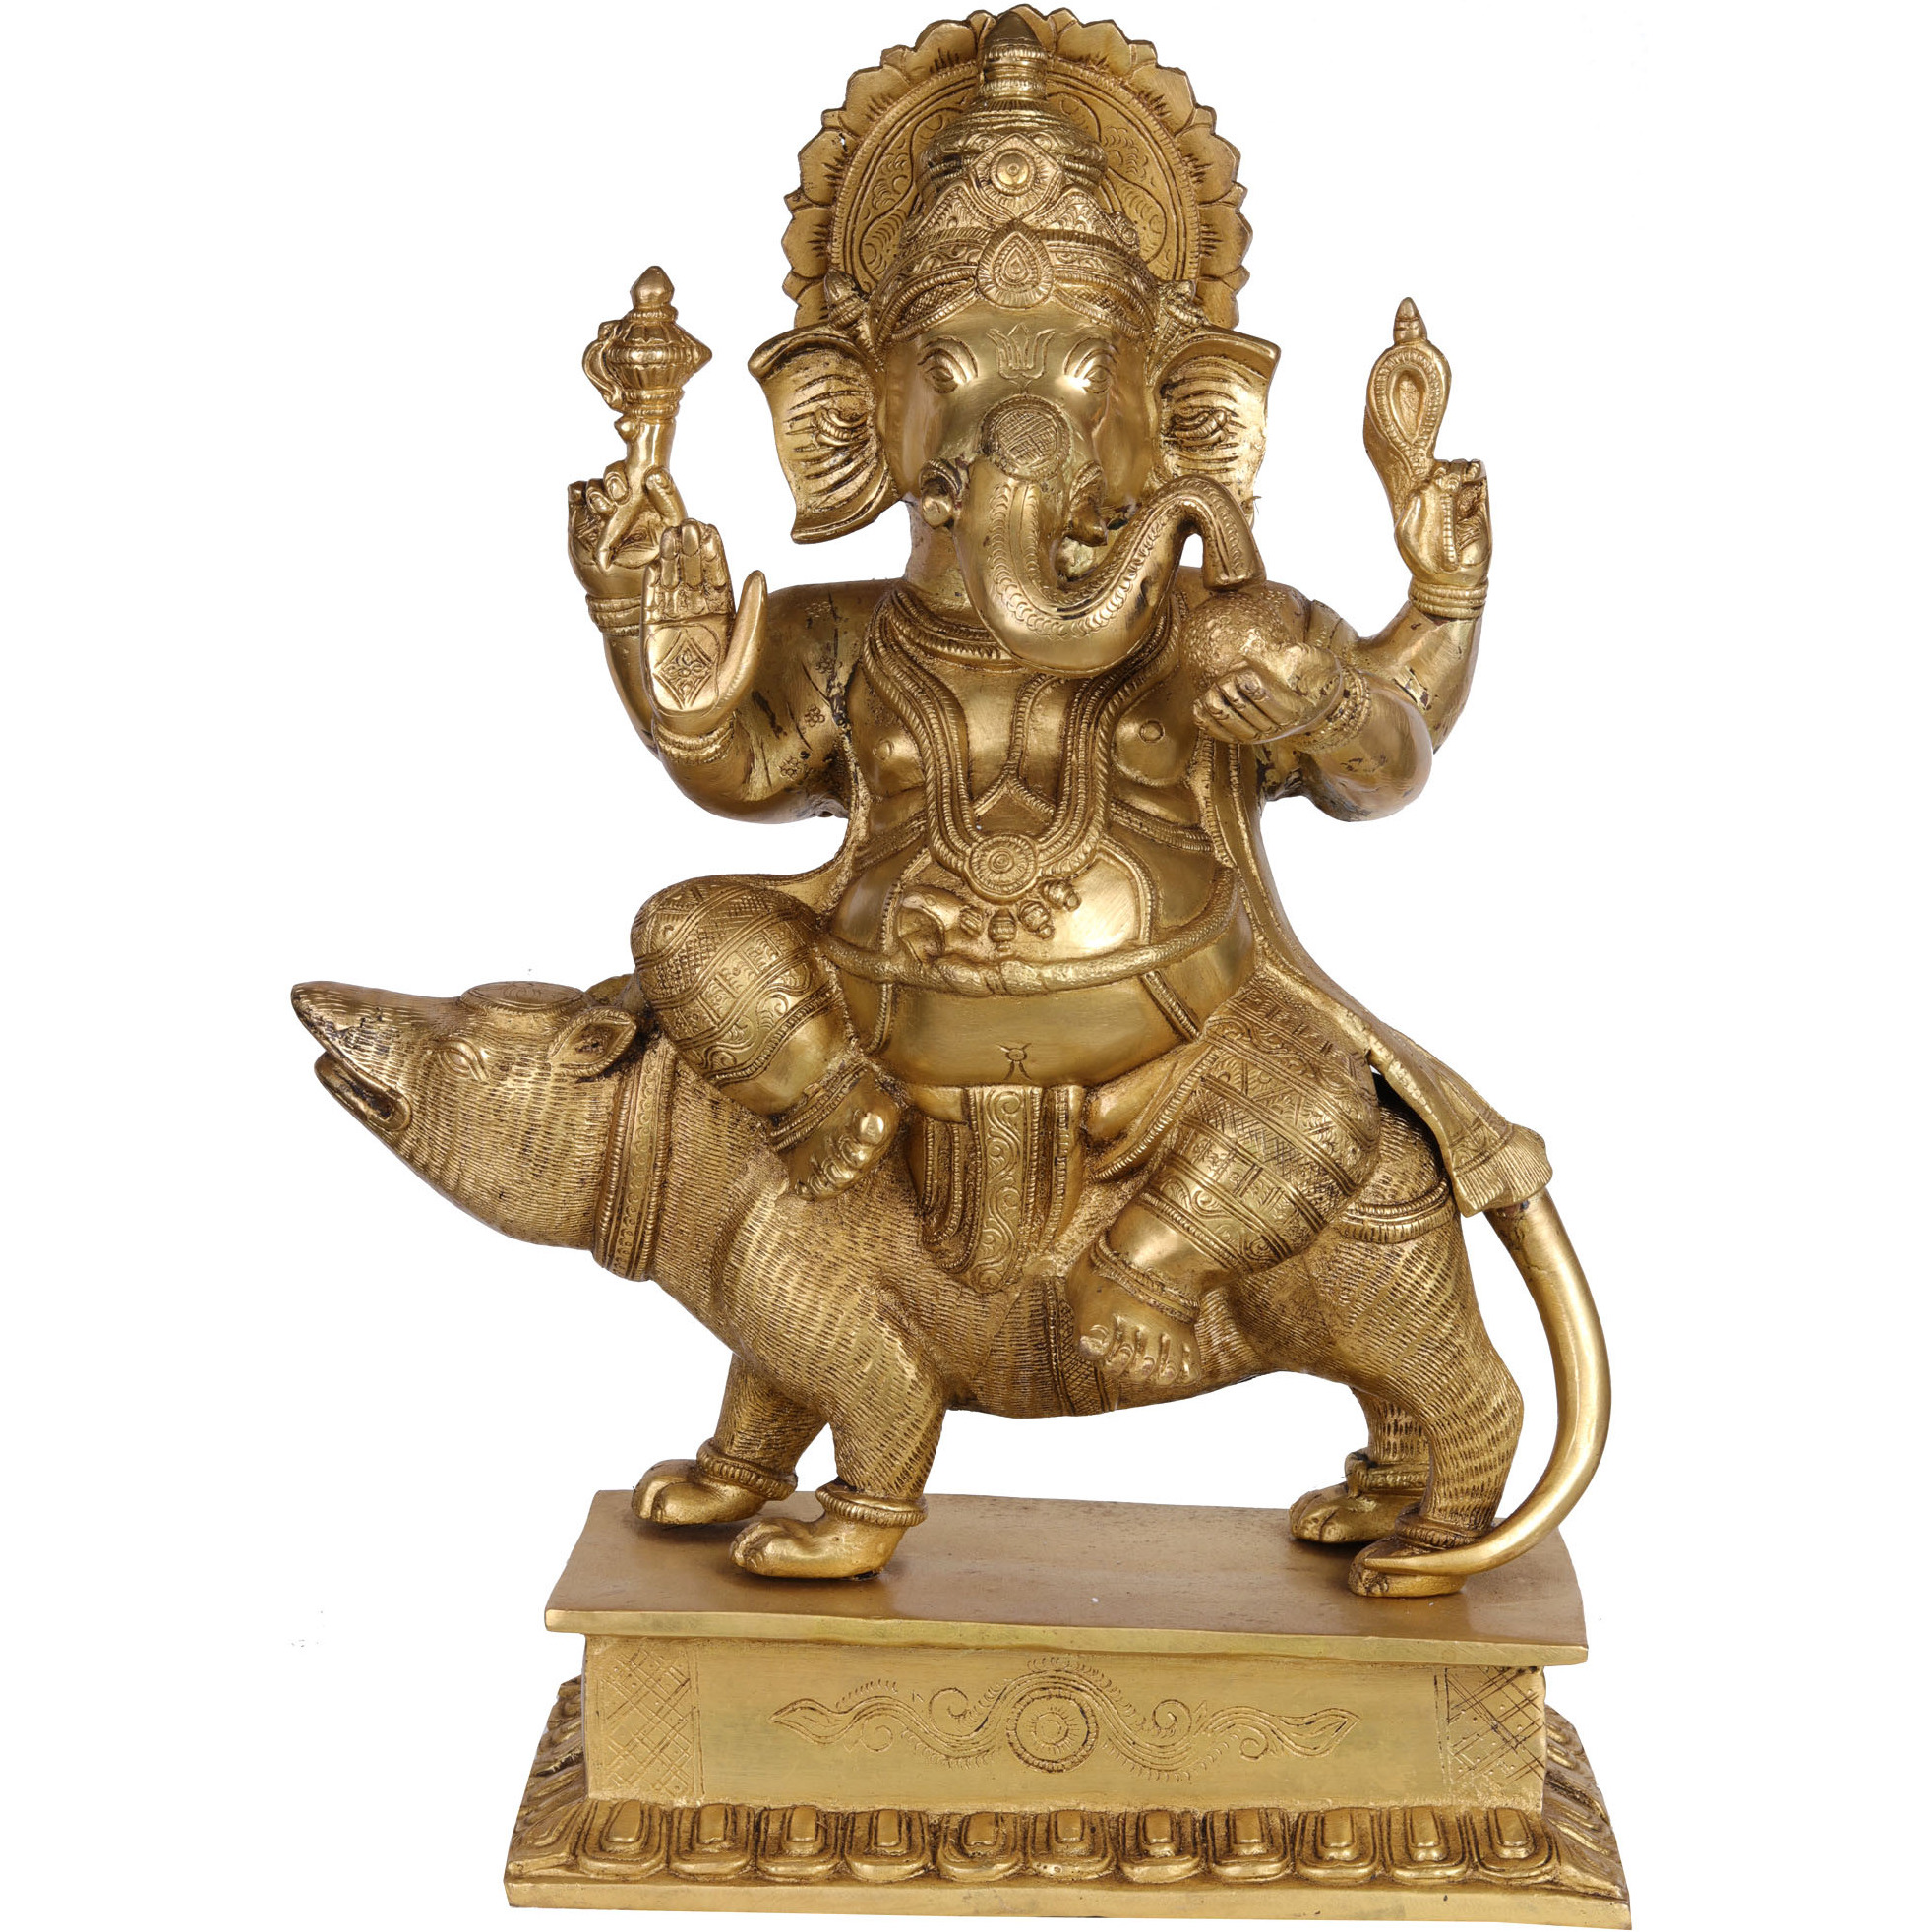 Lord Ganesha Seated on a Rat